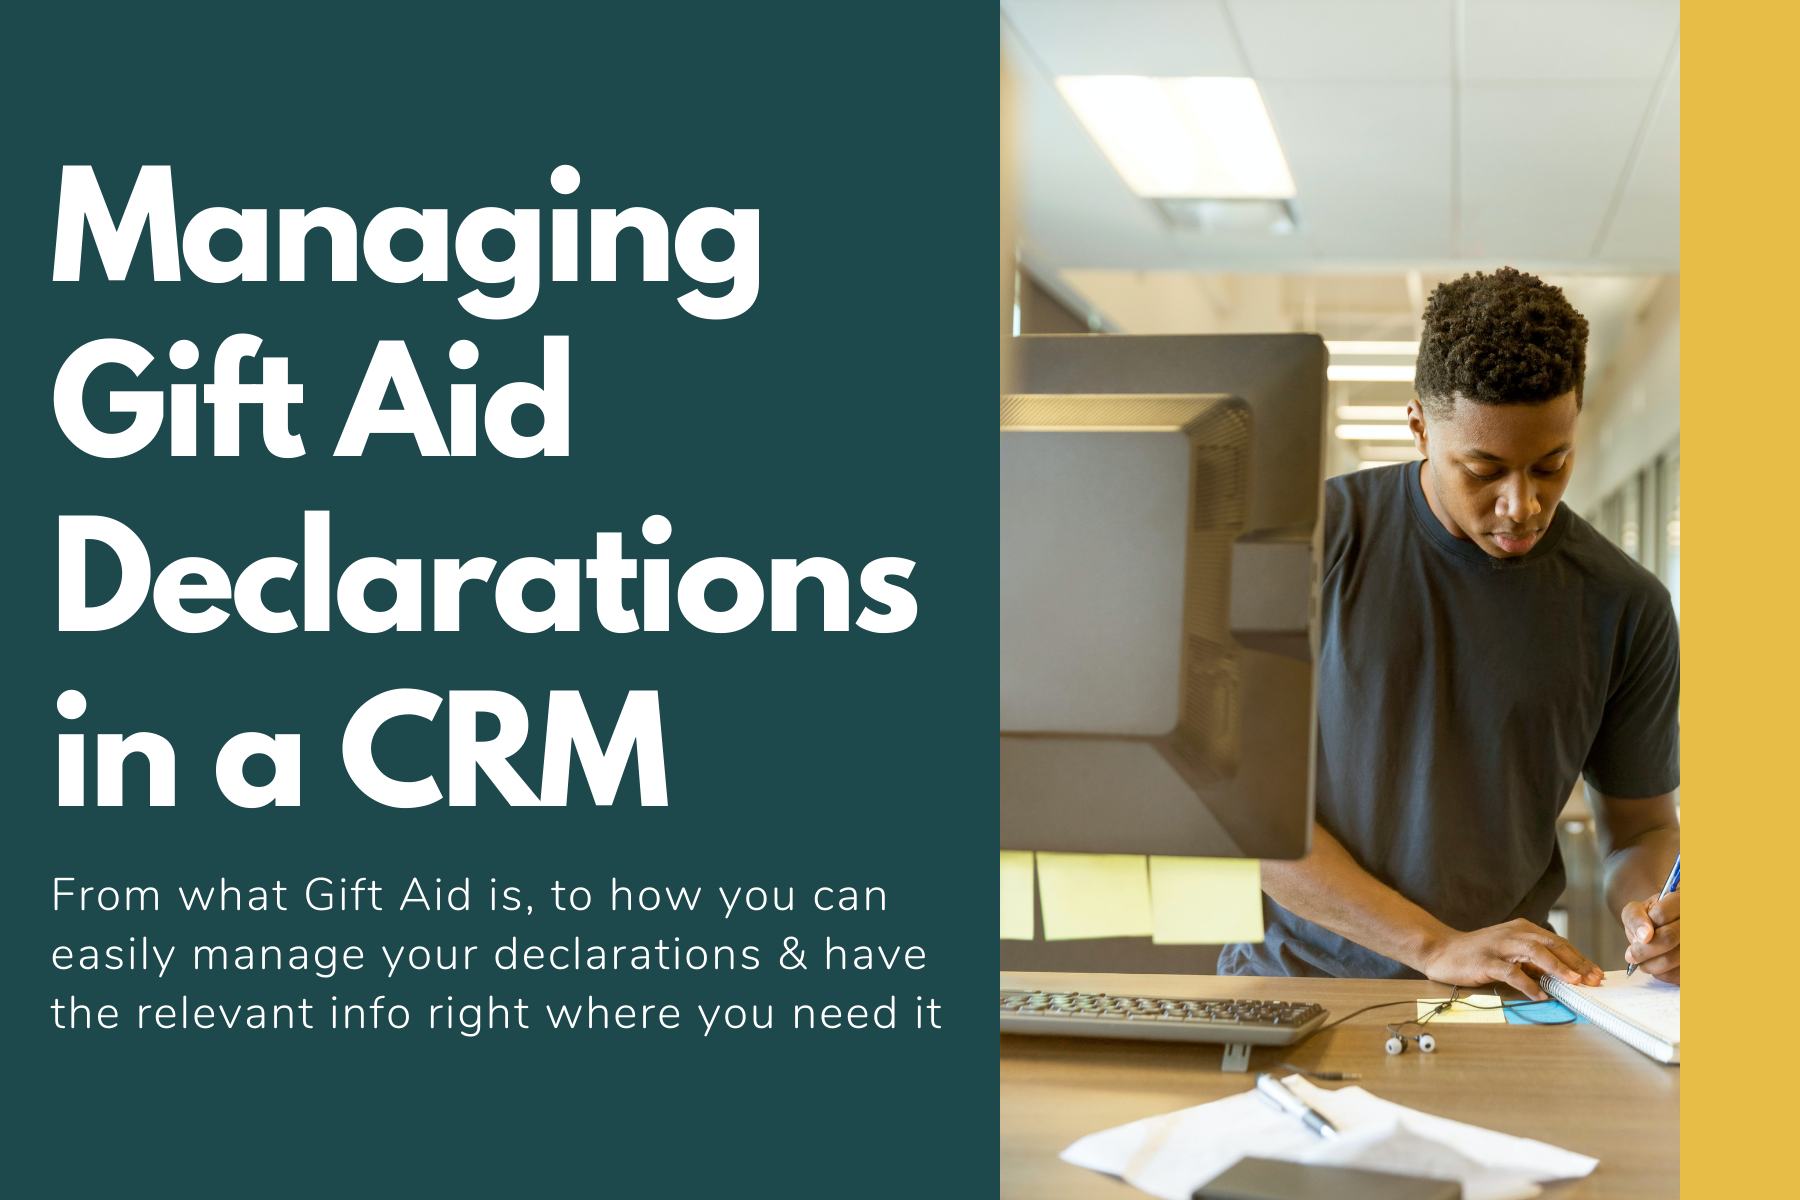 Managing Gift Aid Declarations in a CRM